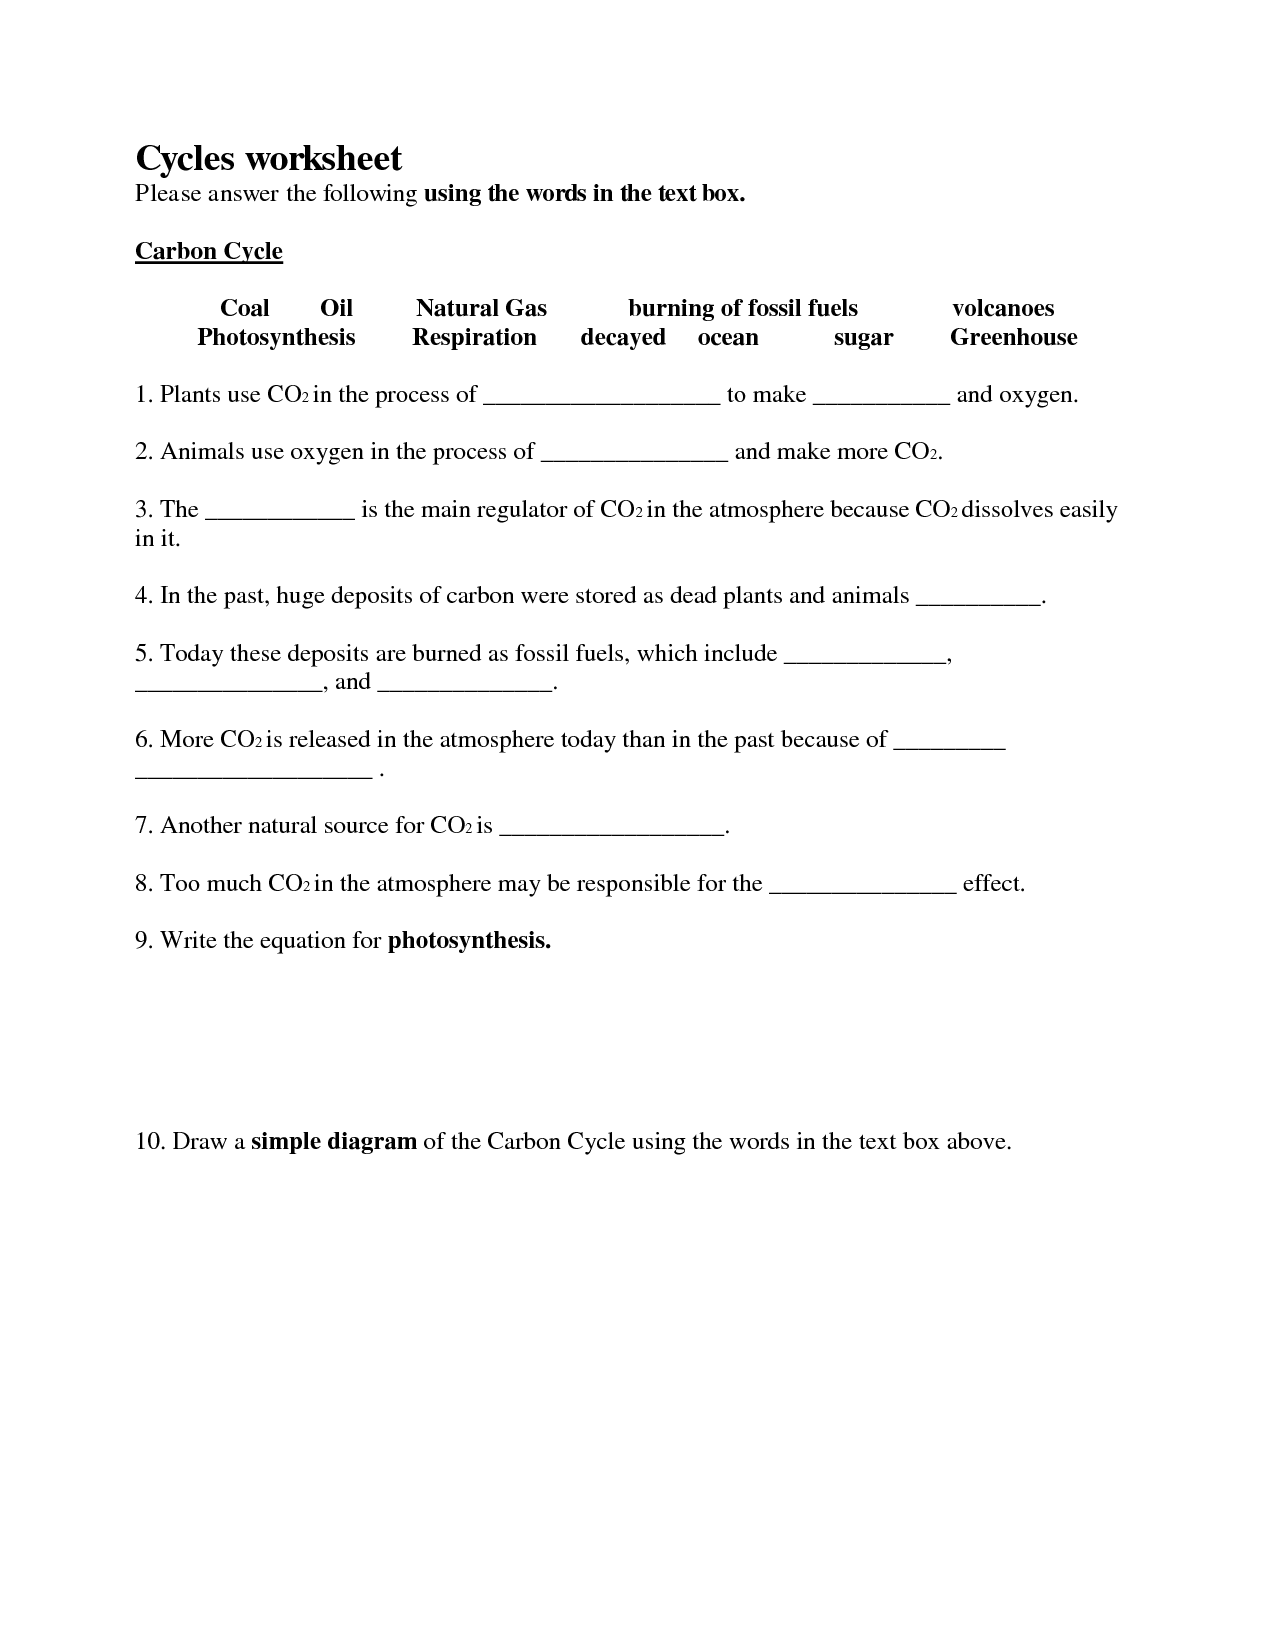 Worksheets Cycles Worksheet Answers Cheatslist Free Worksheets For Kids Amp Printable